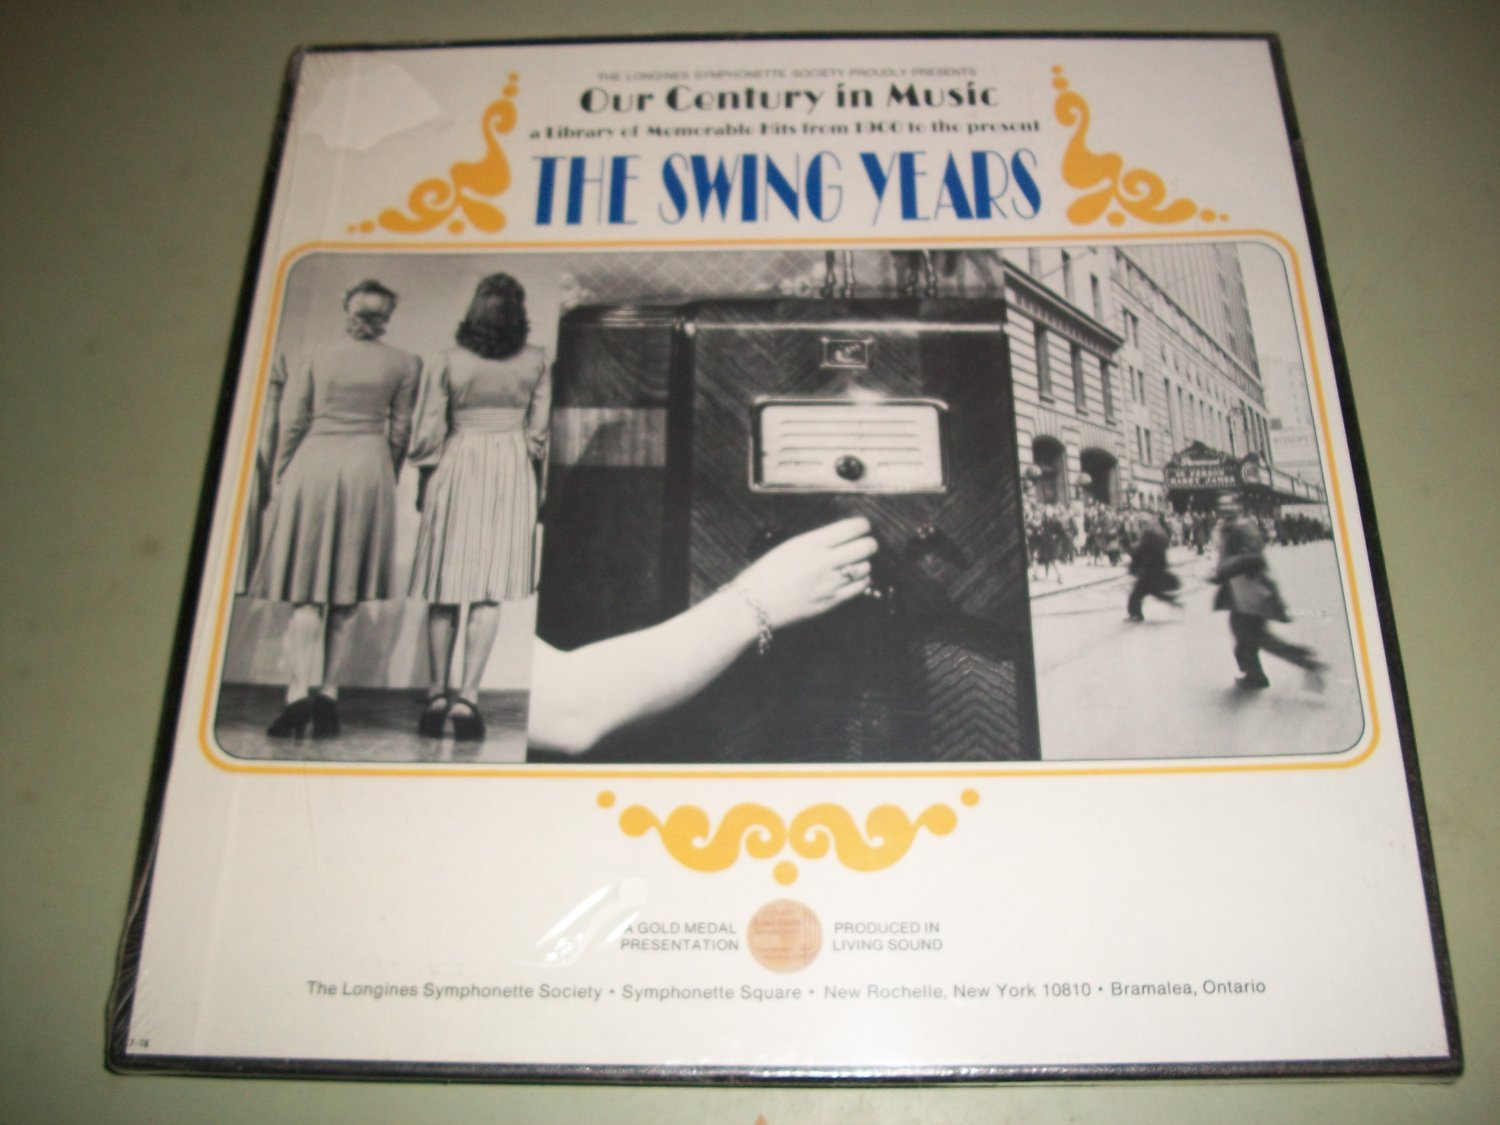 The Swing Years Vol. 18 - The Longines Symphonette Society  - 3 LP Box Set - Factory Sealed